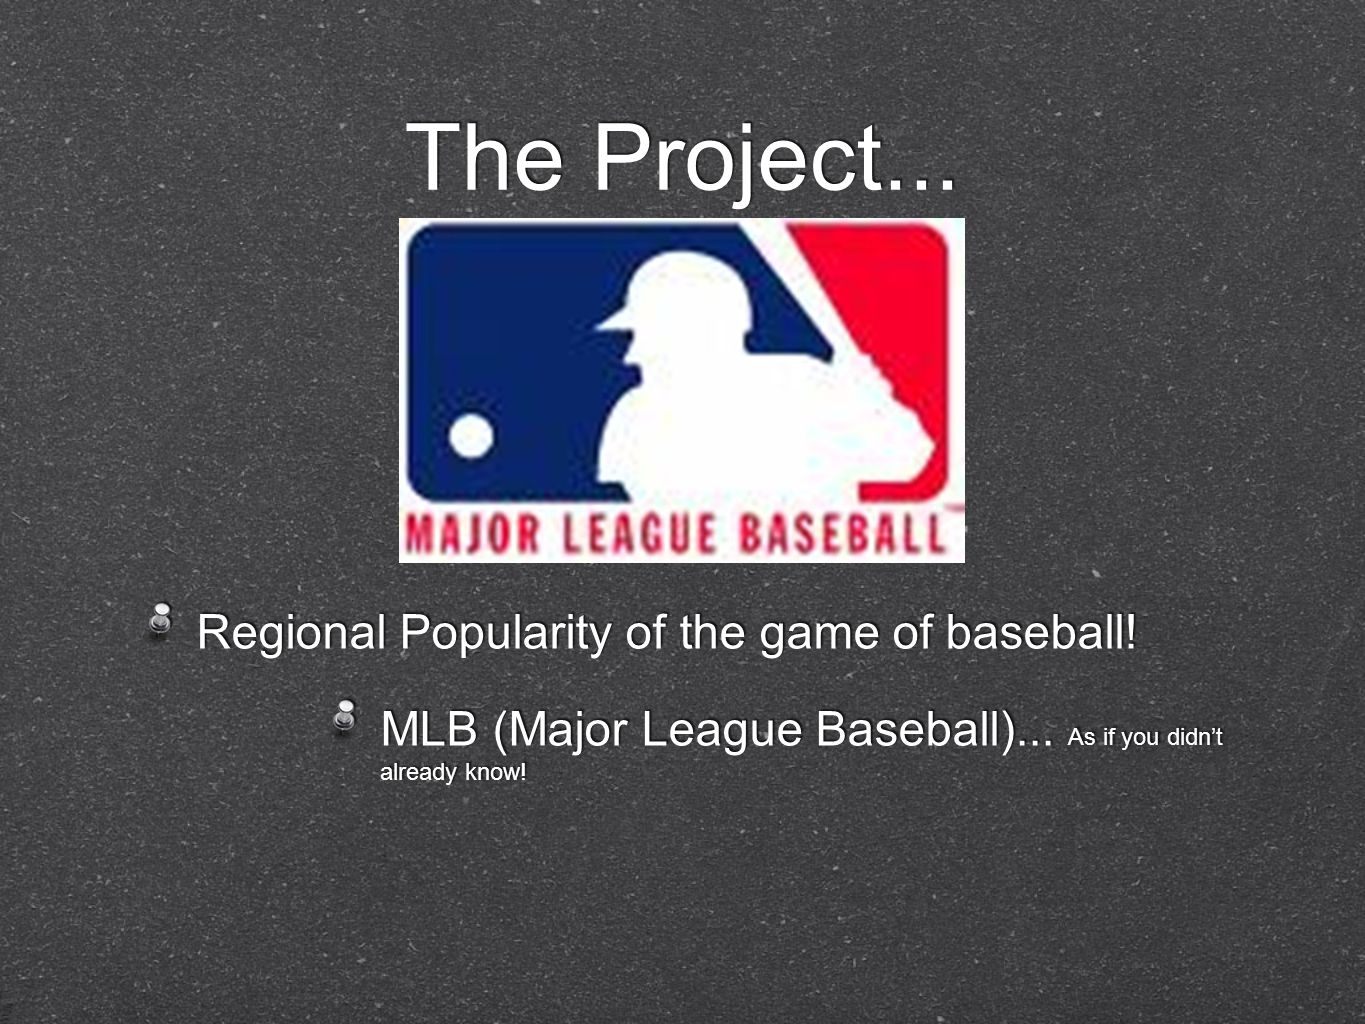 The Project... Regional Popularity of the game of baseball.